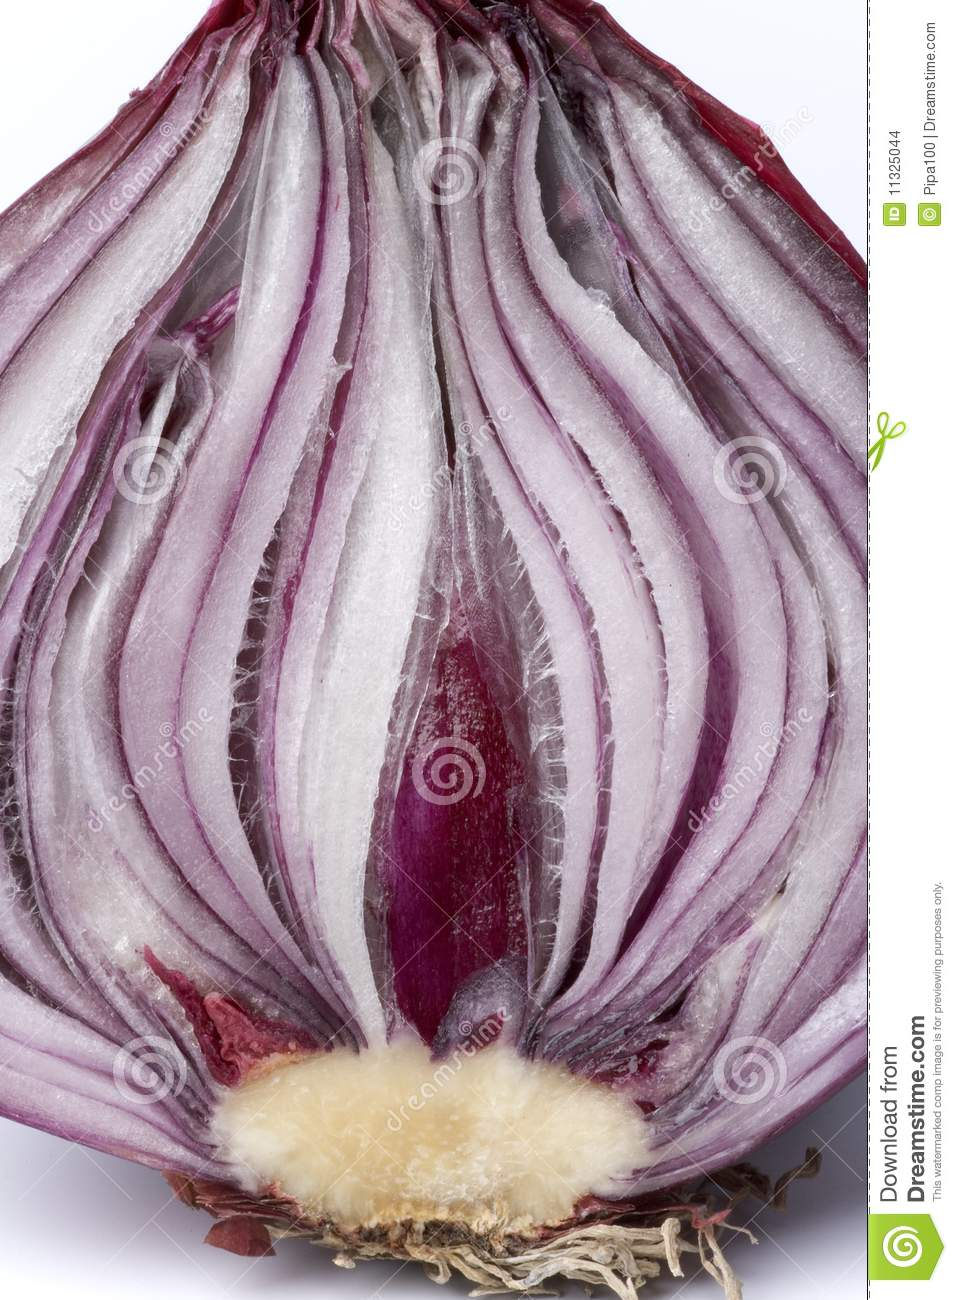 Half Red Onion On White Background Stock Images - Image ...